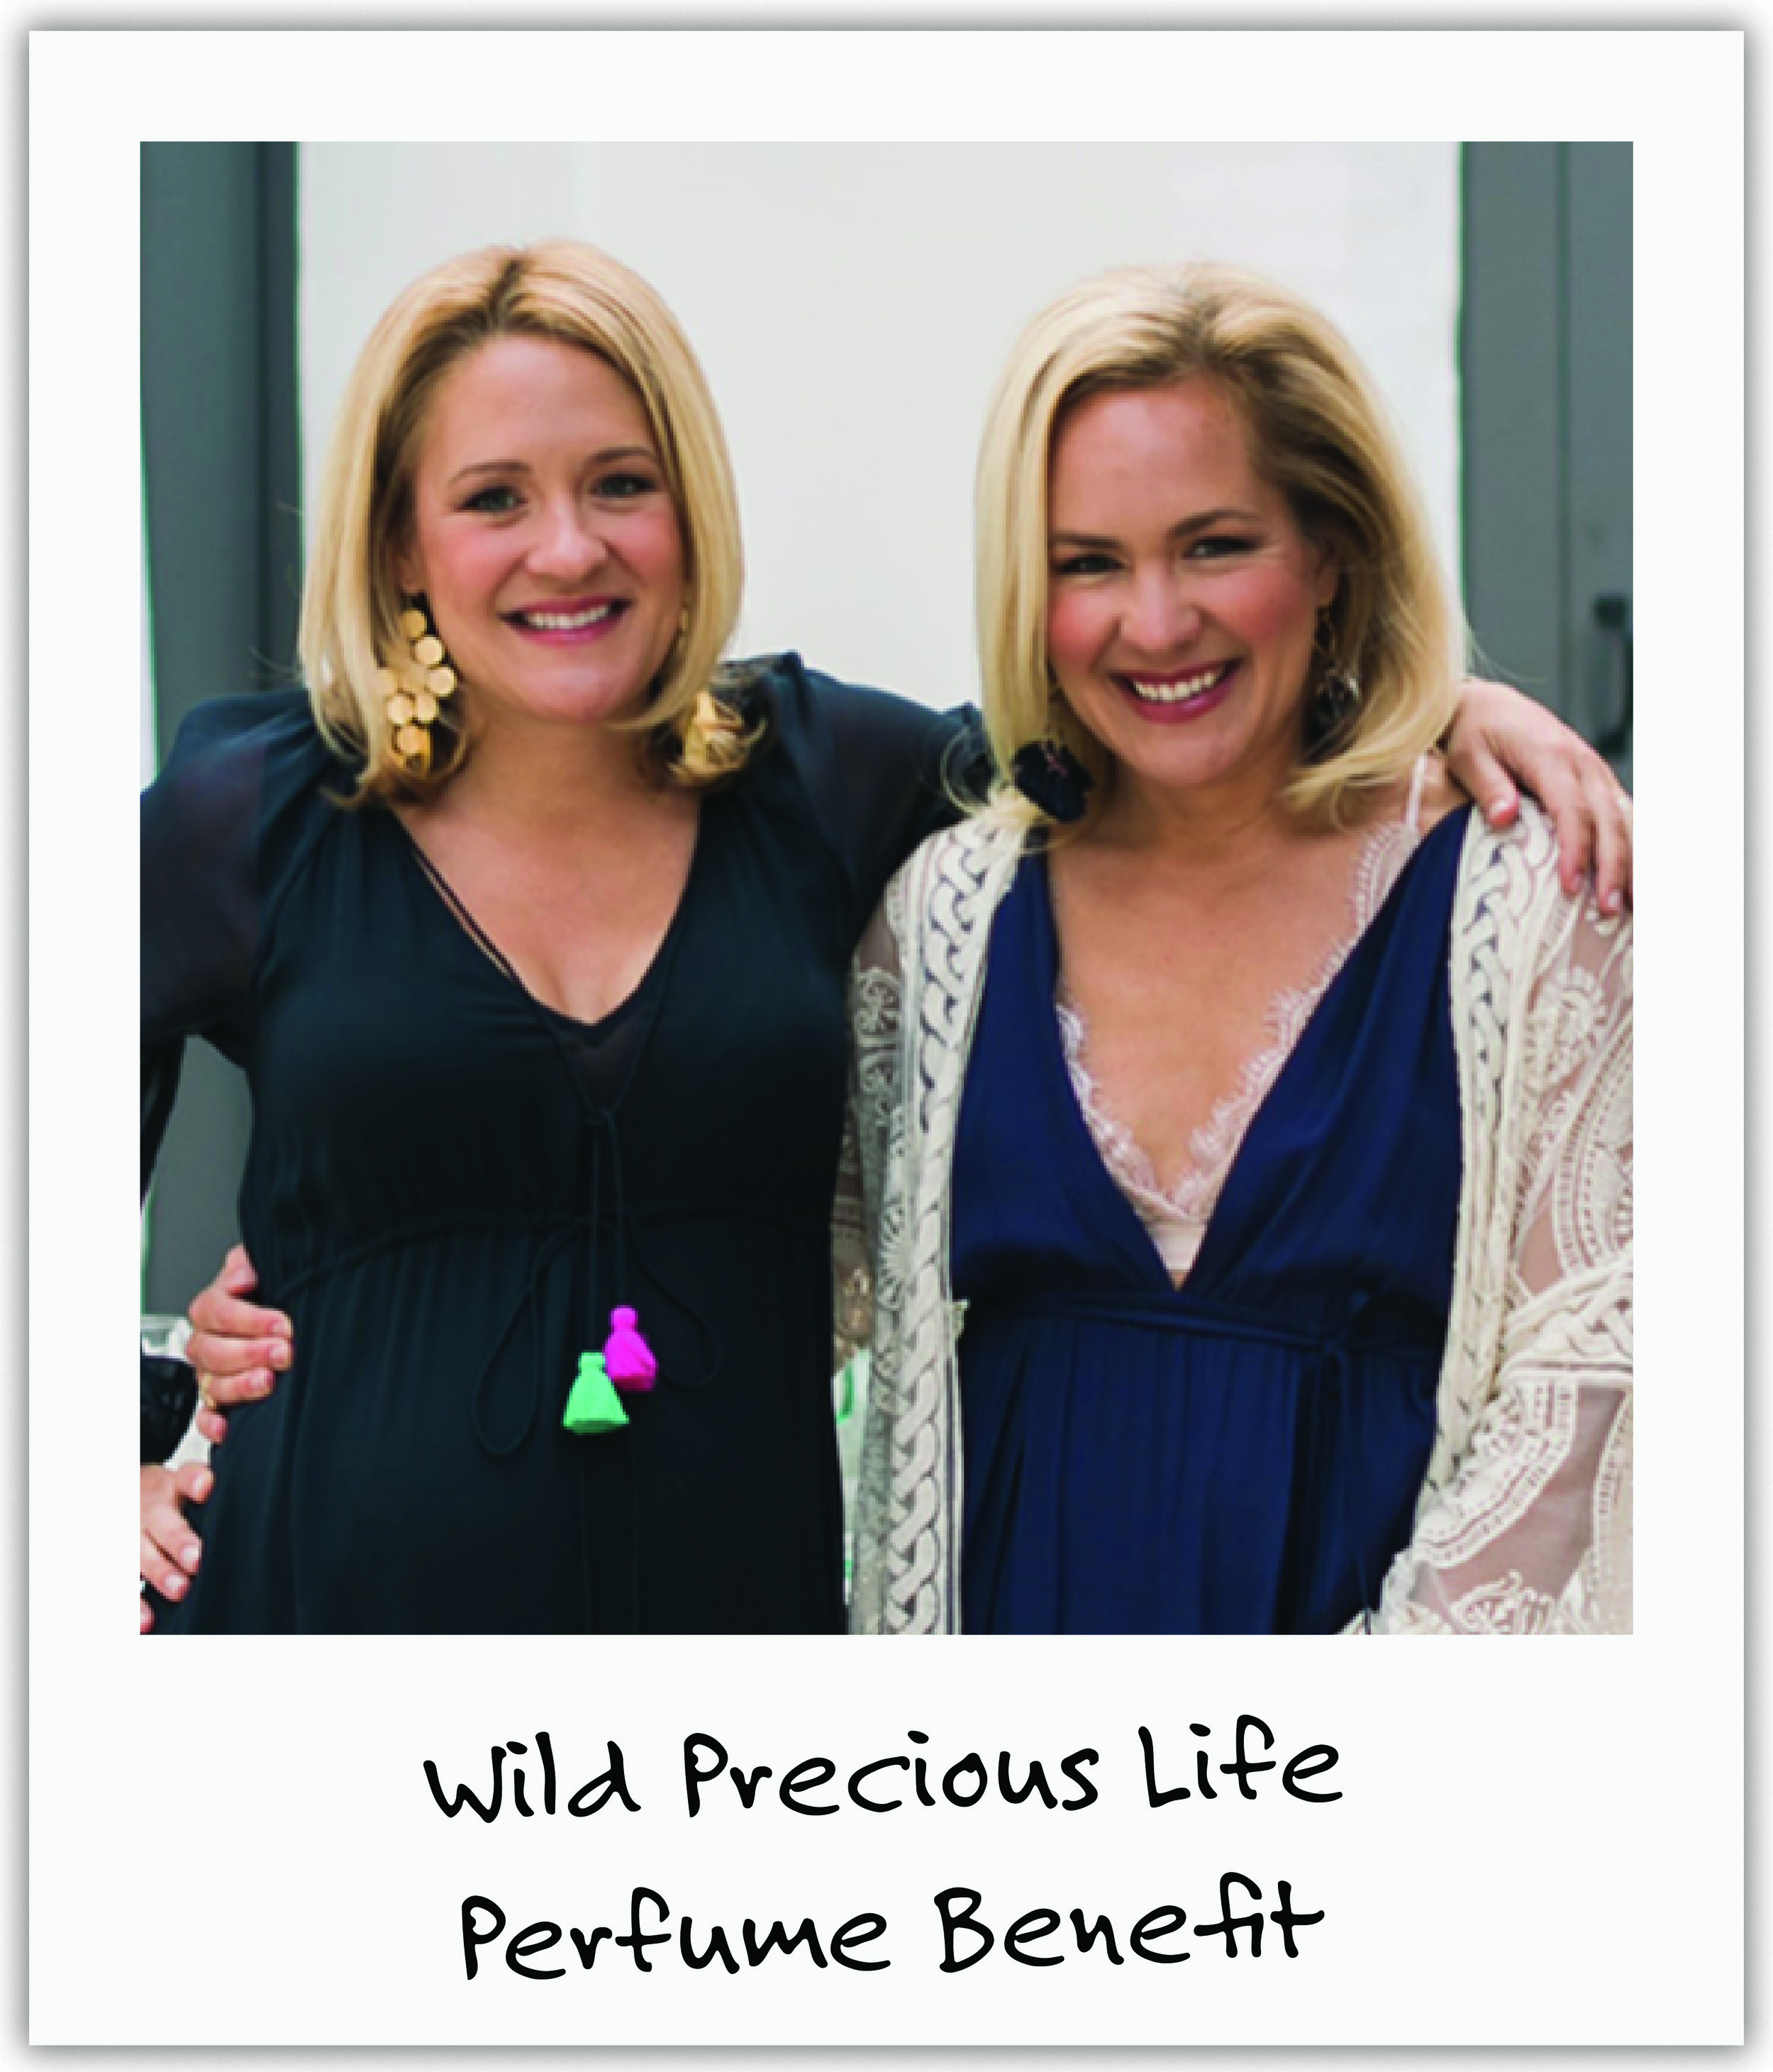 LA sisters and old friends Mary and Lucy dedicated perfume sales and healing mantras from their appropriately named company, Wild Precious Life.